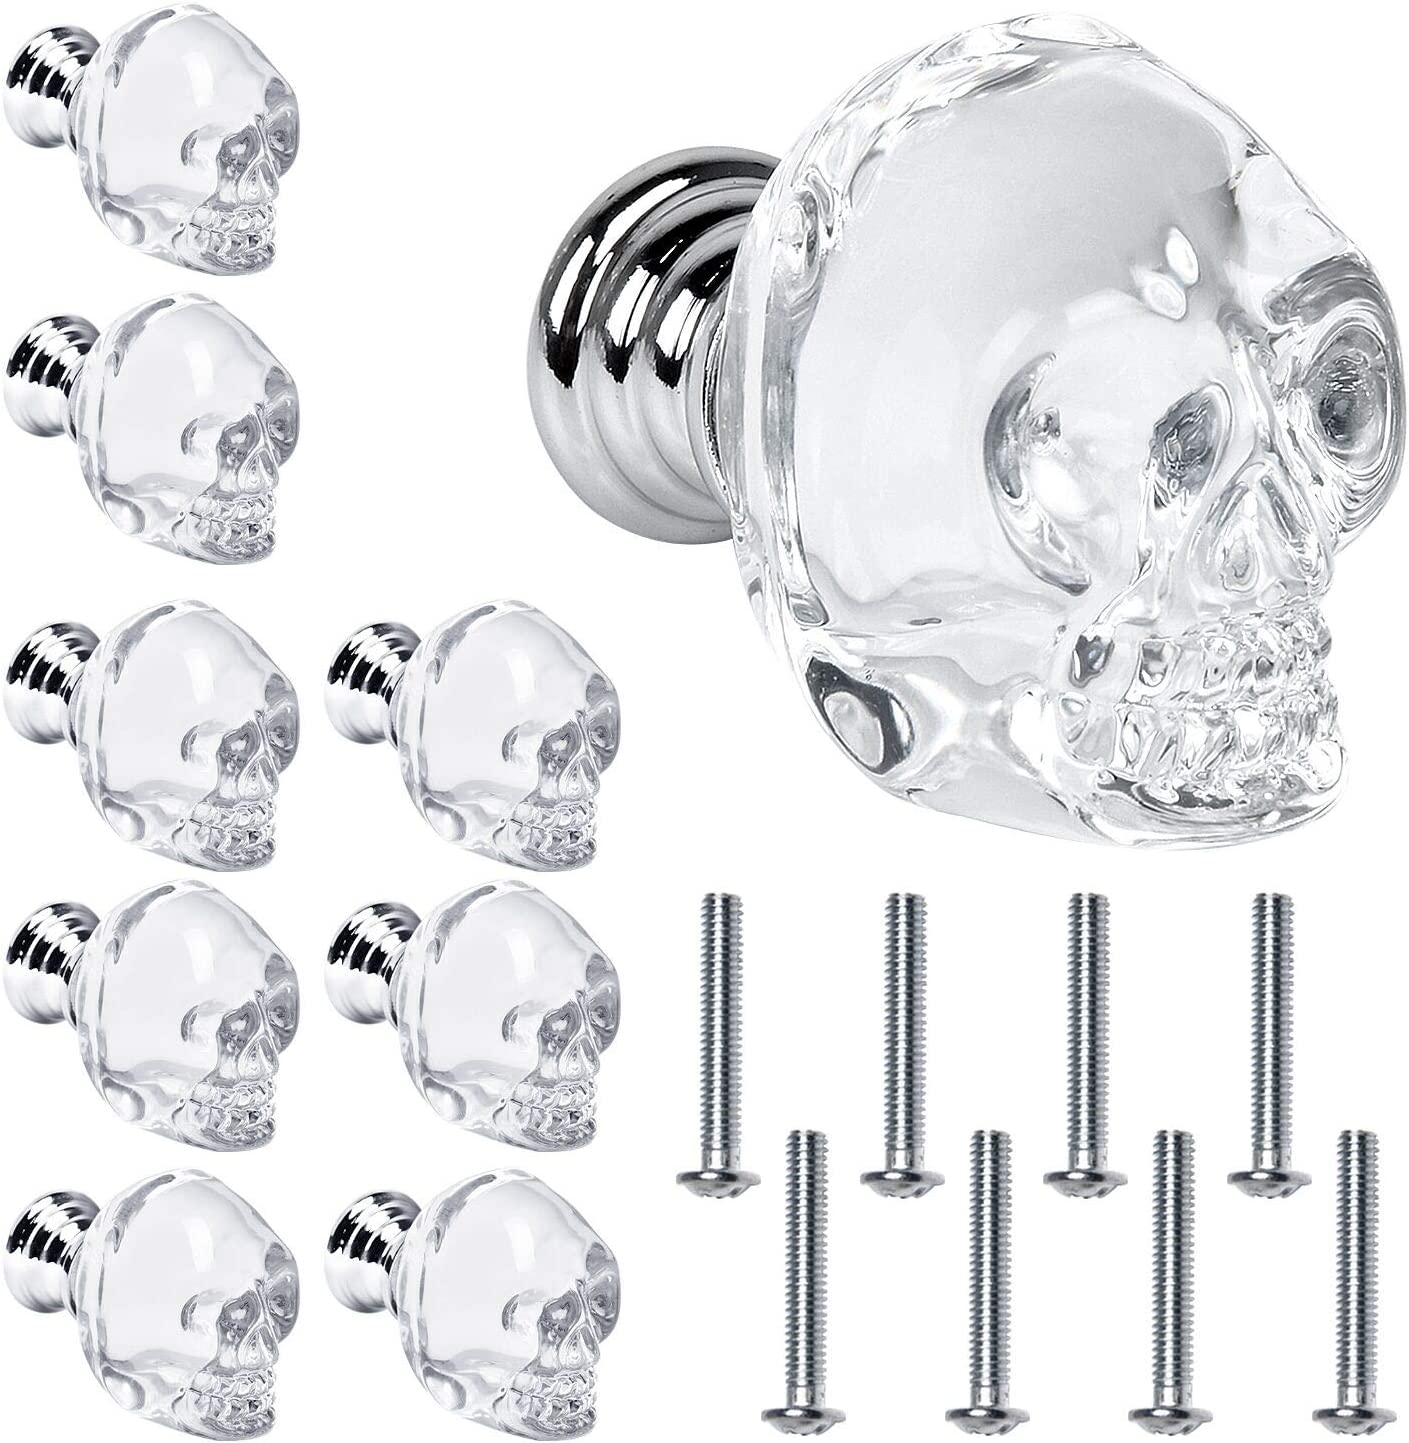 Crystal Glass Door Knobs Akamino Skull Clear Drawer Knobs with Screw Knob Pull Handle Hardware for Cabinet Wardrobe Cupboard - Home Kitchen Bedroom Decor Knobs